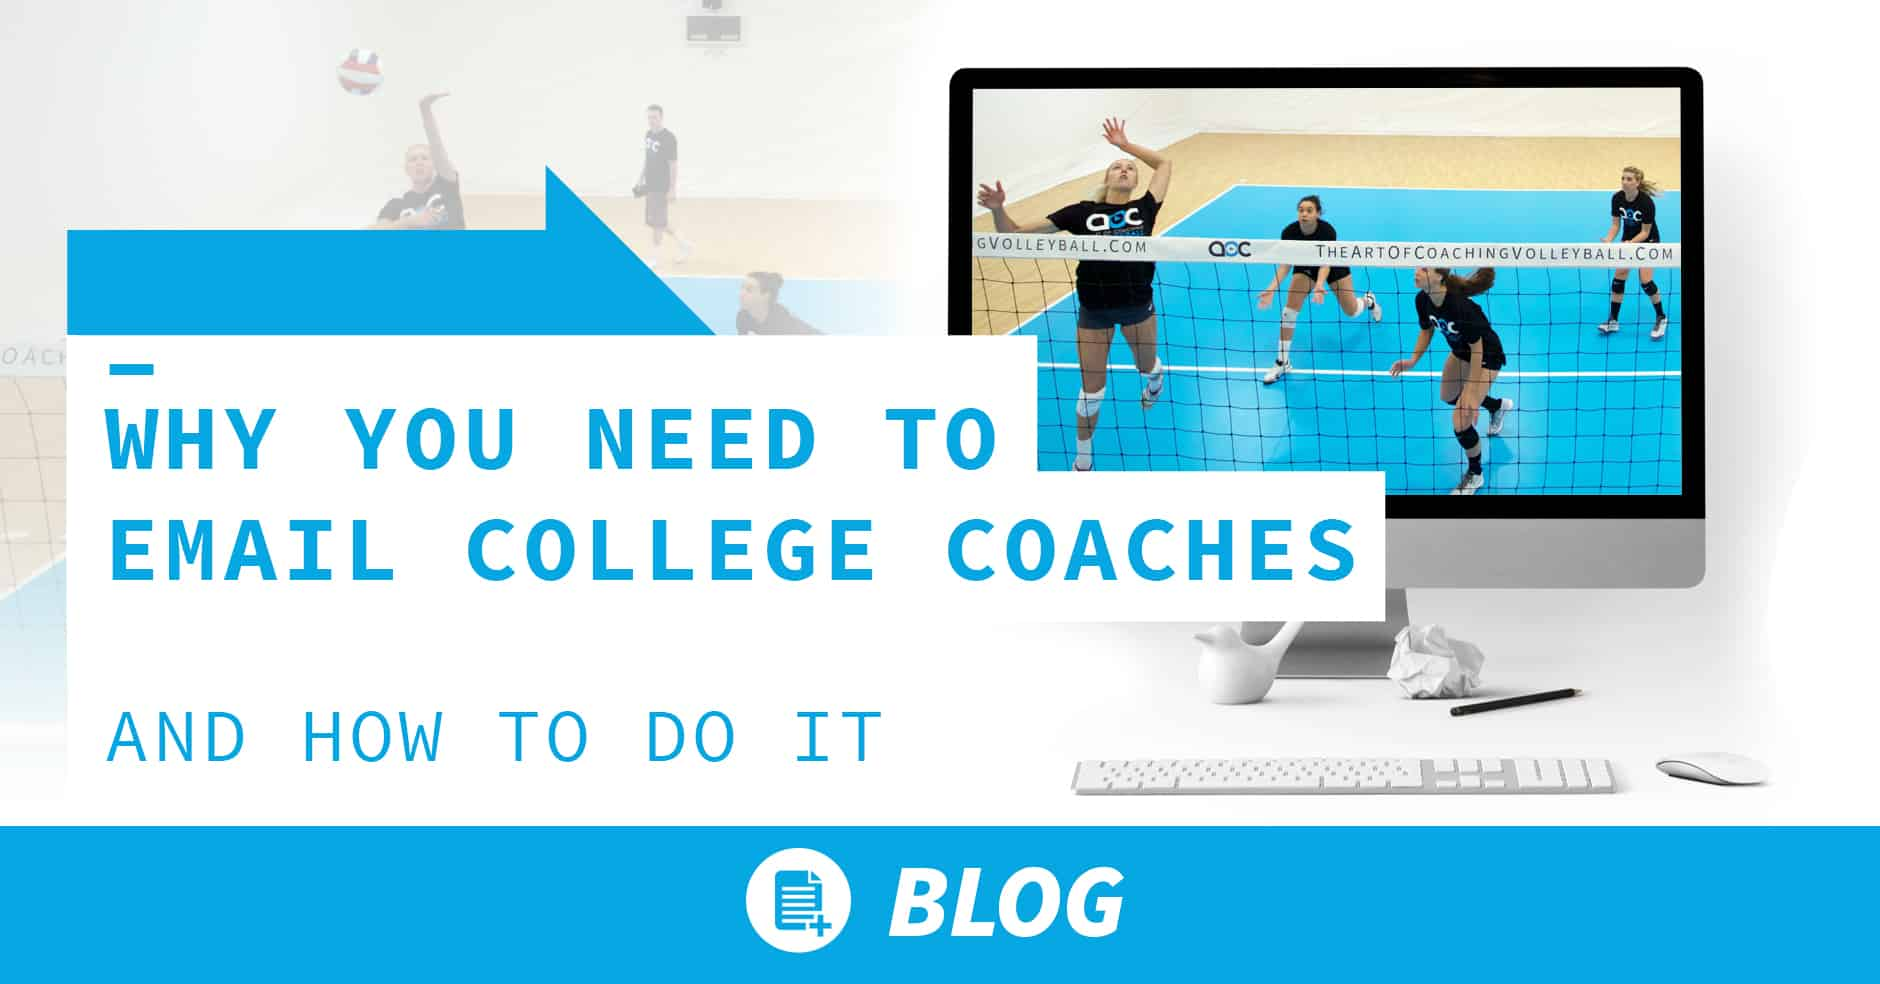 Why you need to email college coaches and how to do it